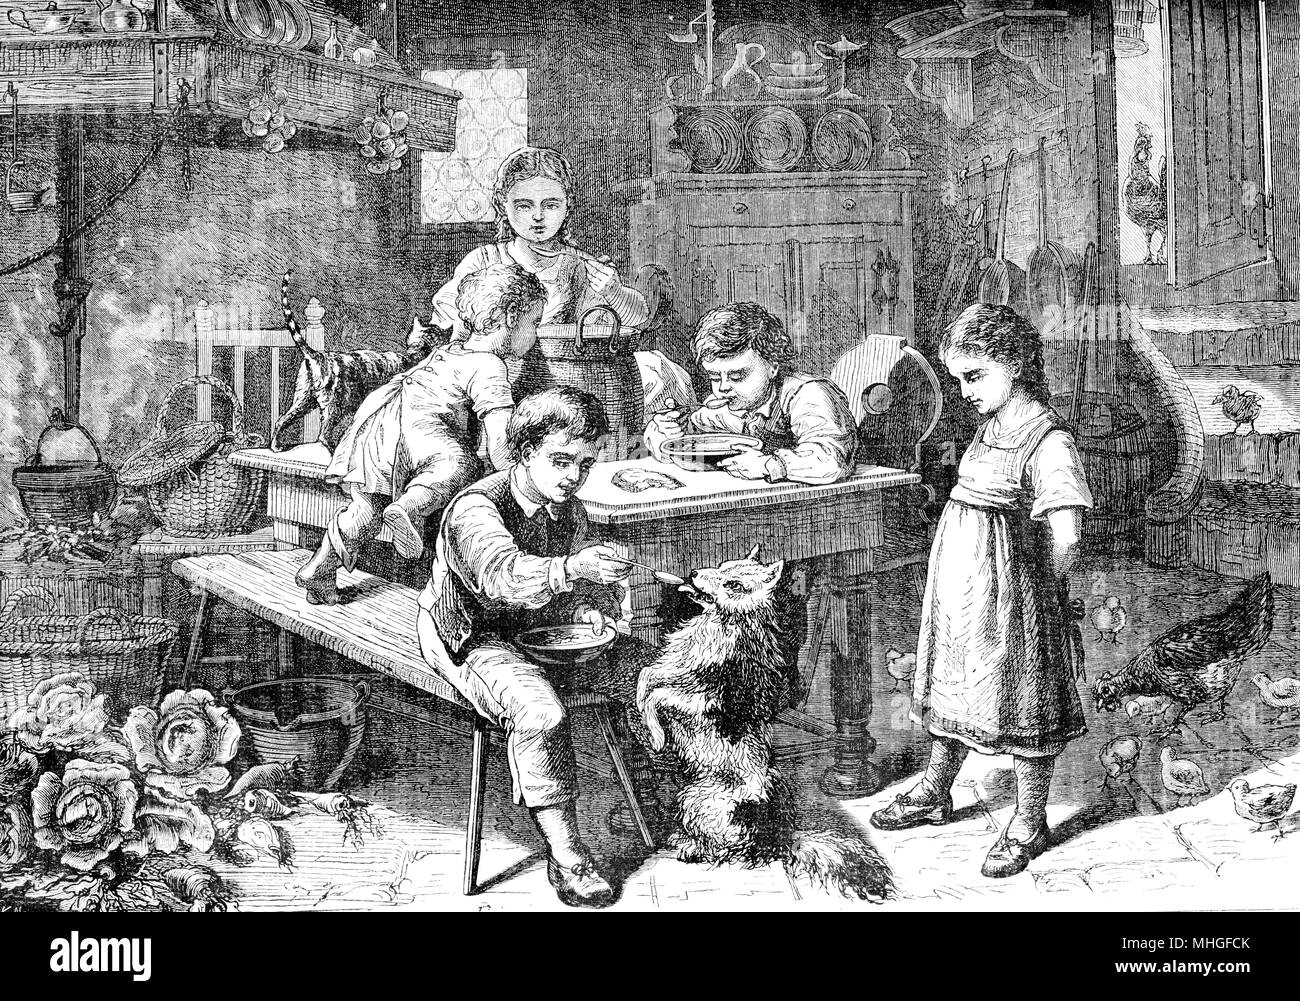 Vintage print of lunch time in farmhouse: boy, girls and children eat together in the kitchen and feed a pet dog - Stock Image